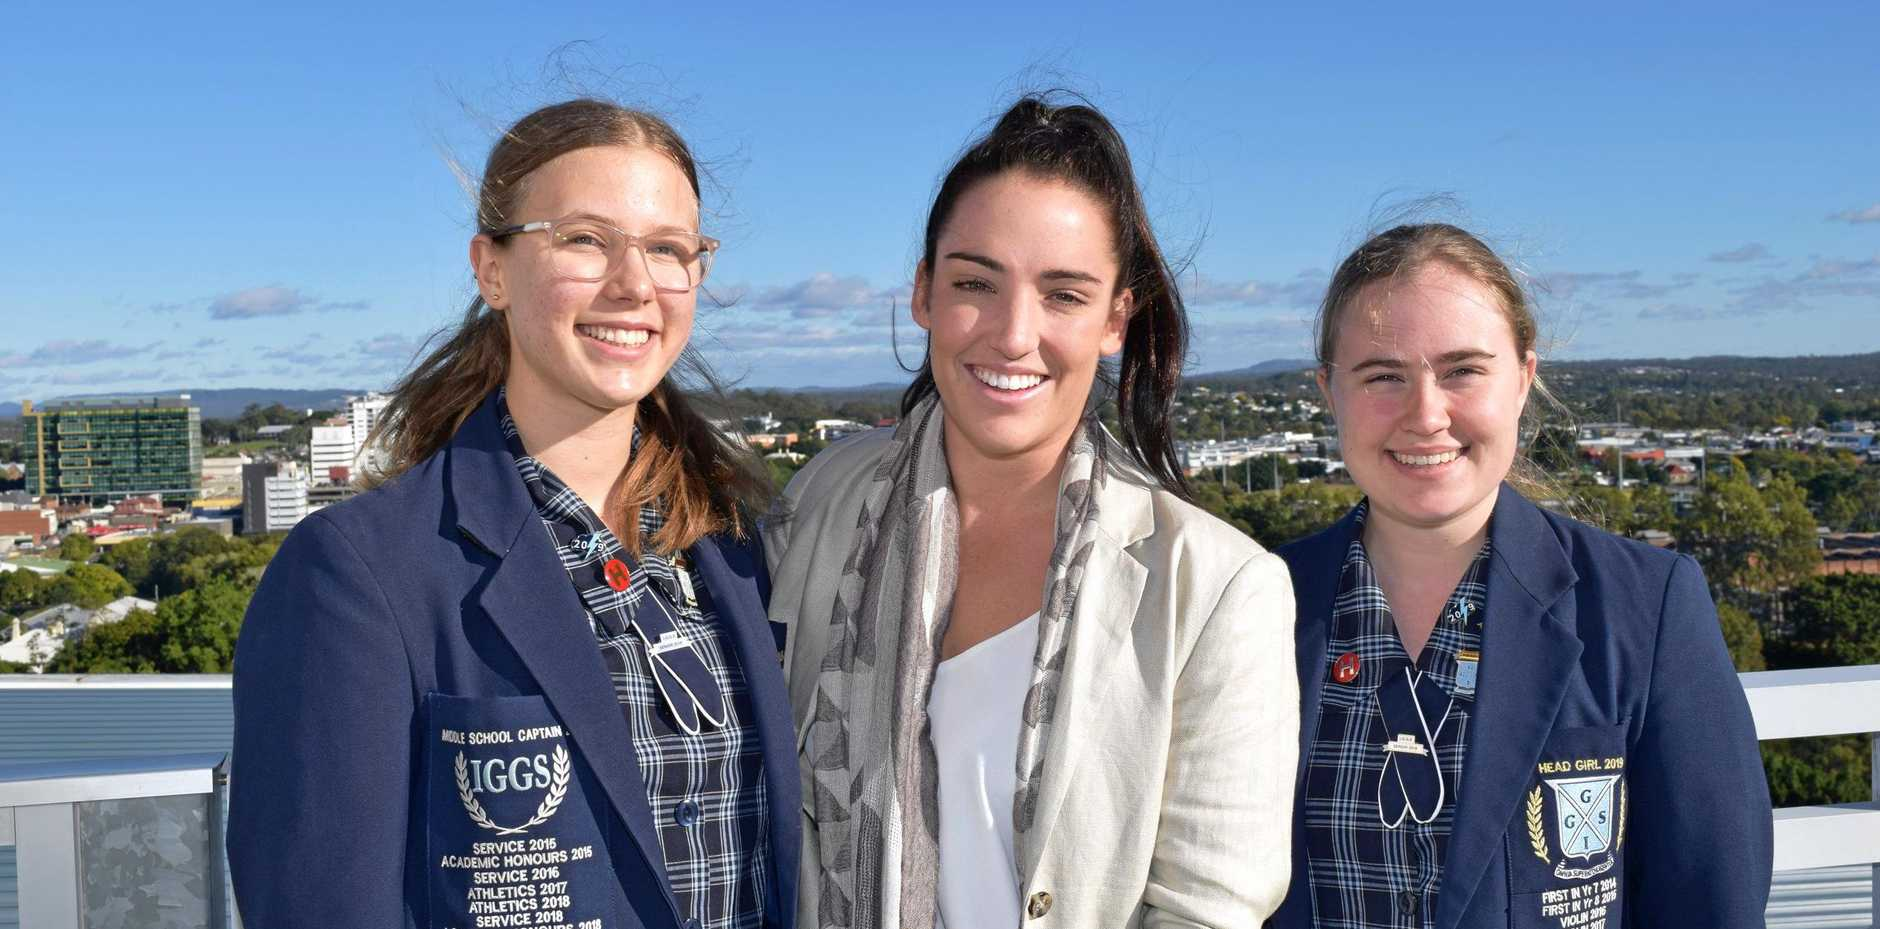 IGGS Head Girls Laura Carniel and Evangeline Sturges meet former student Jacqui Bell.